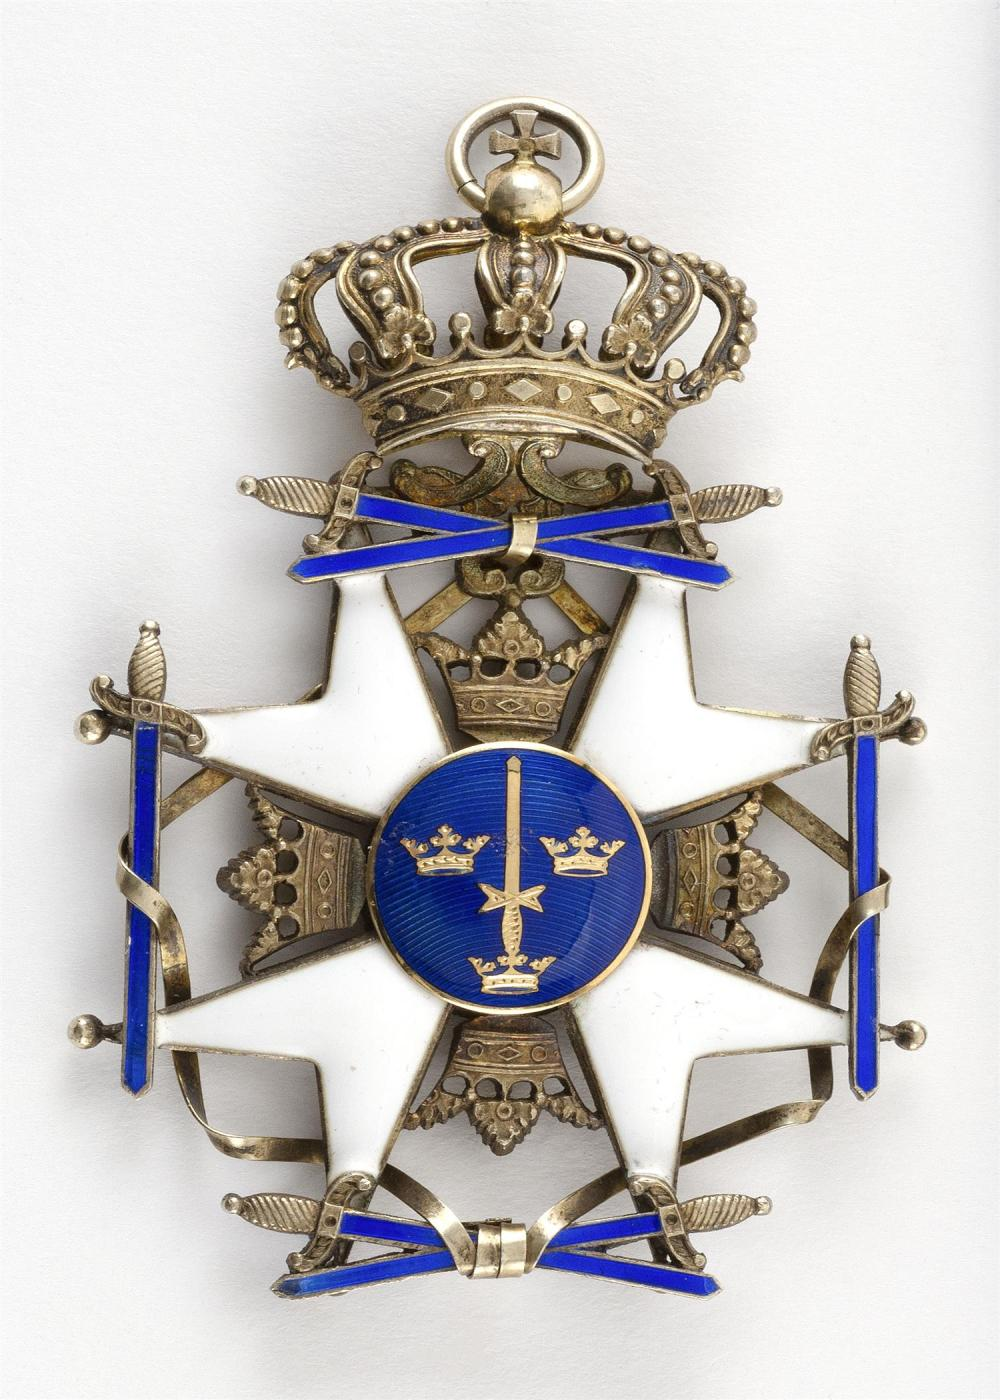 SWEDISH ORDER OF THE SWORD BADGE Gilt silver and enamel. French swan guarantee mark. Length 3